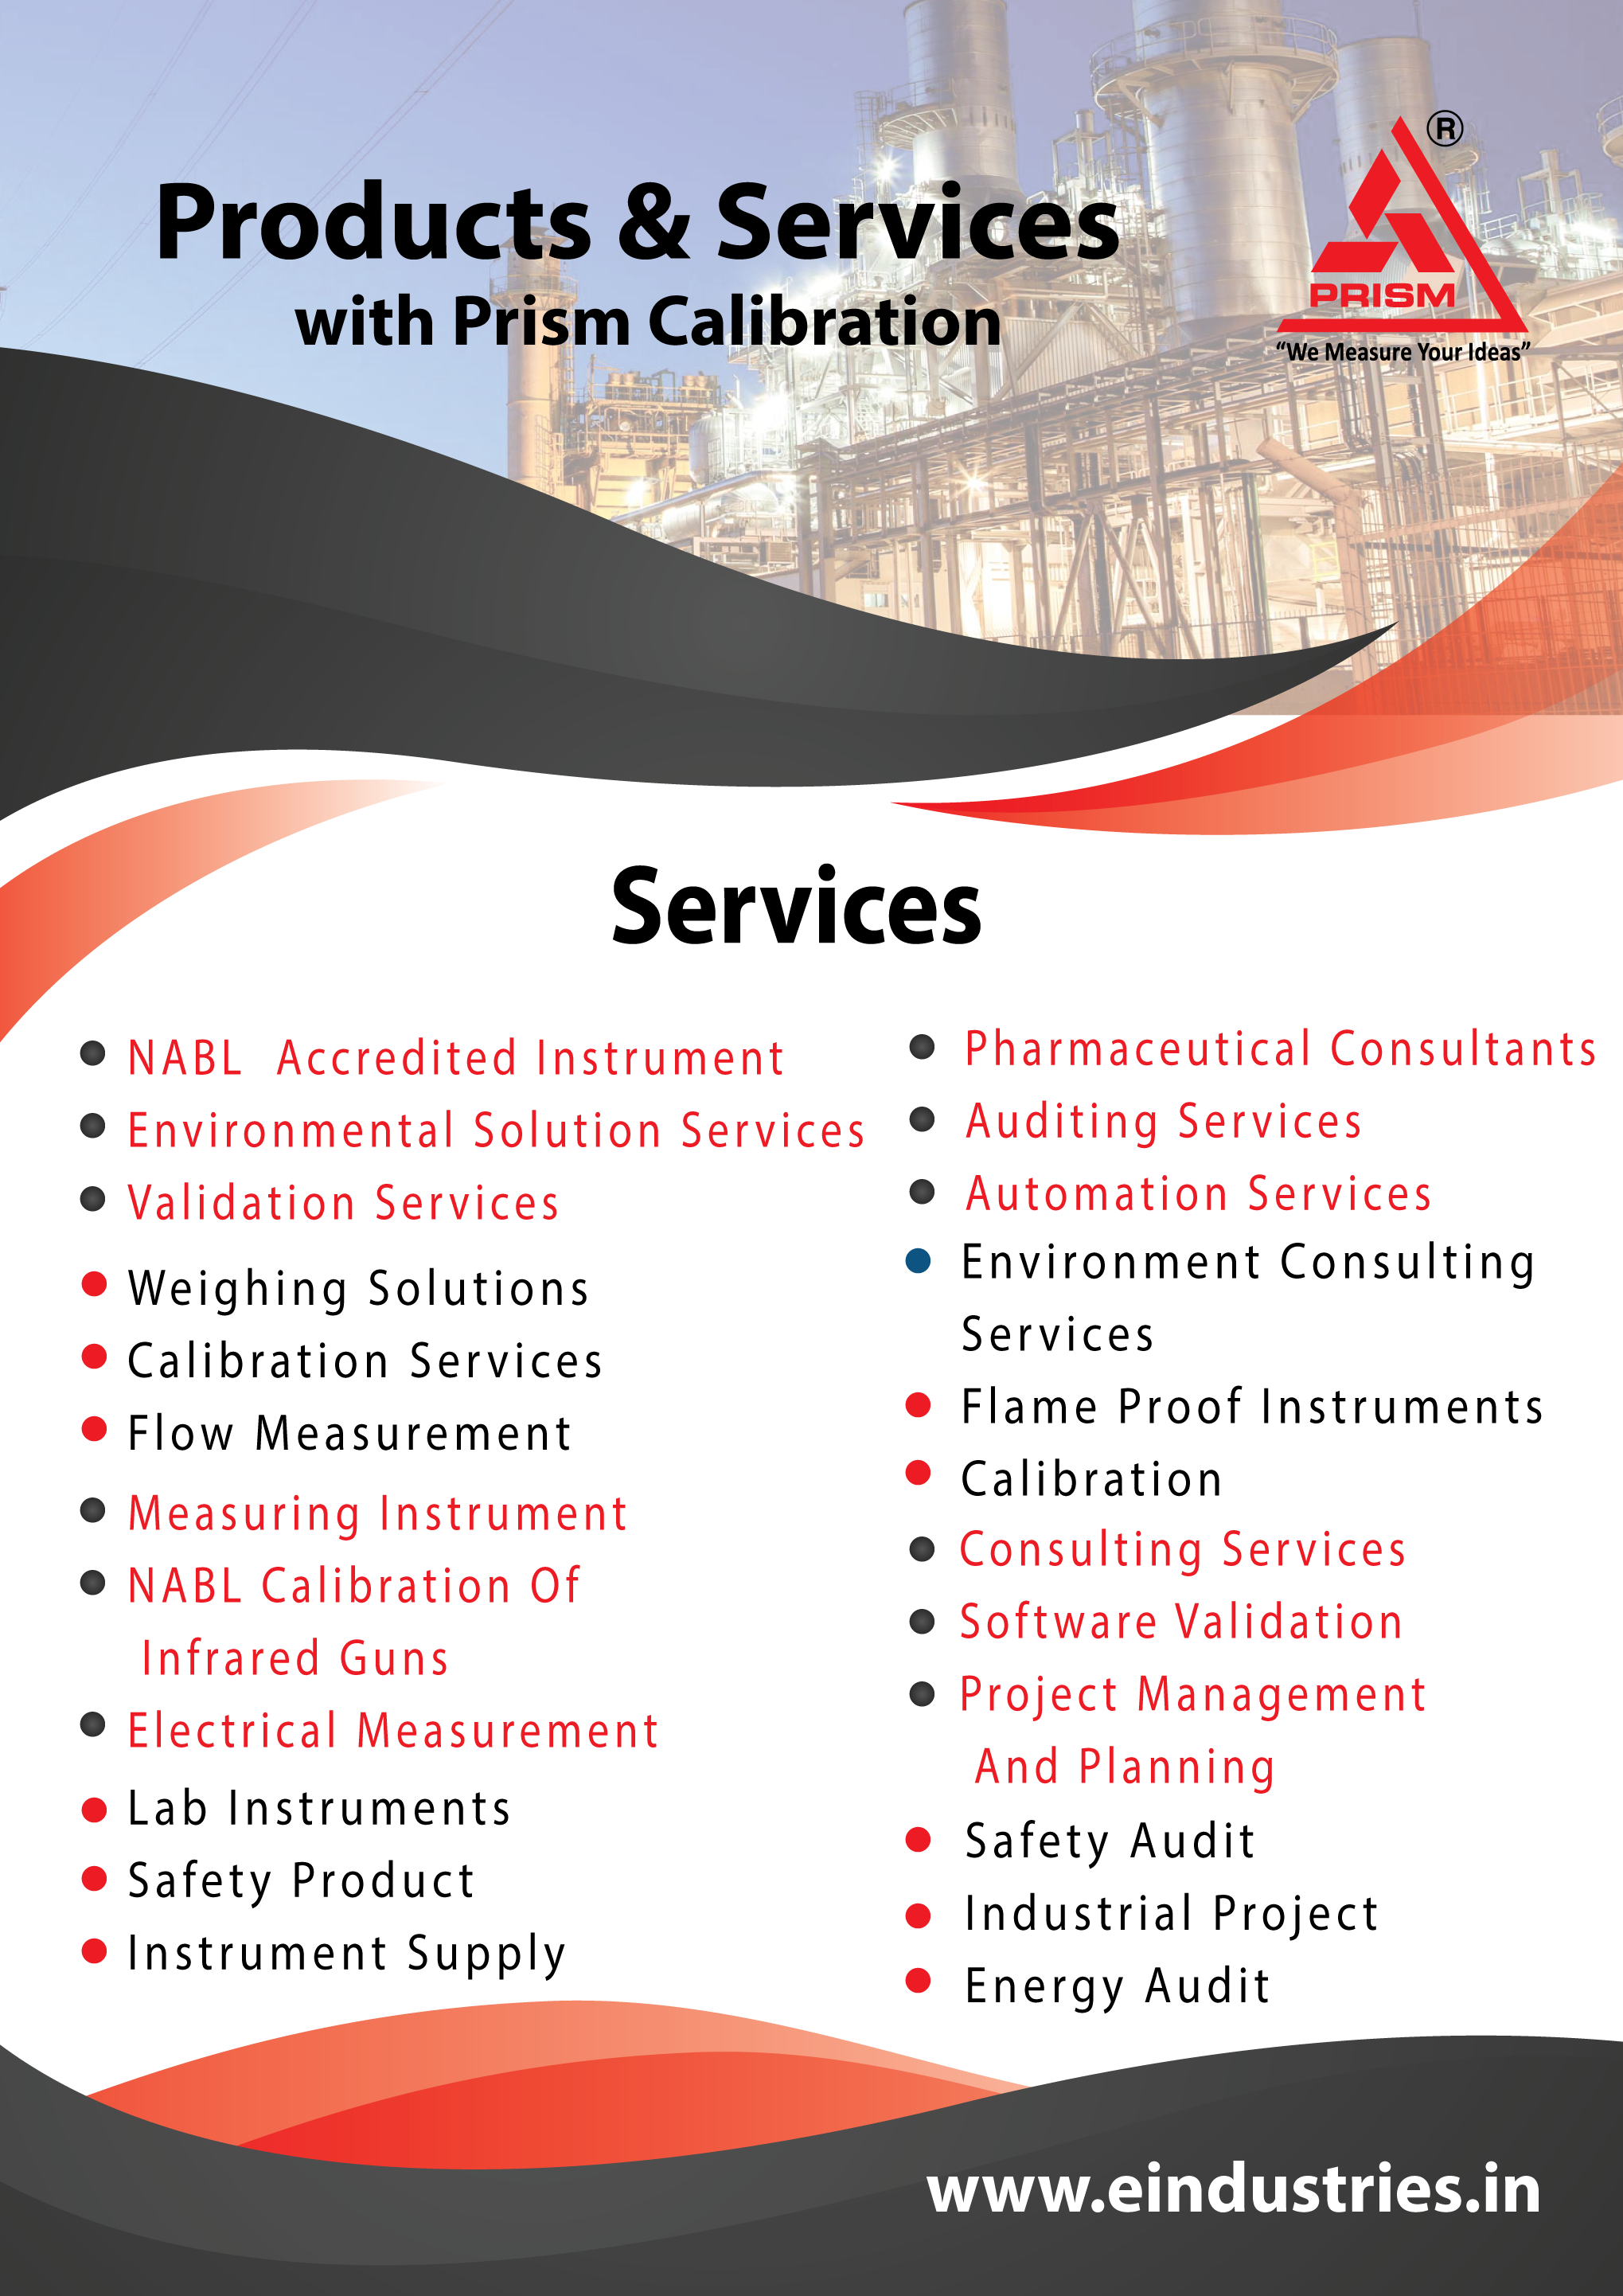 Services And Products @ single step @ prism